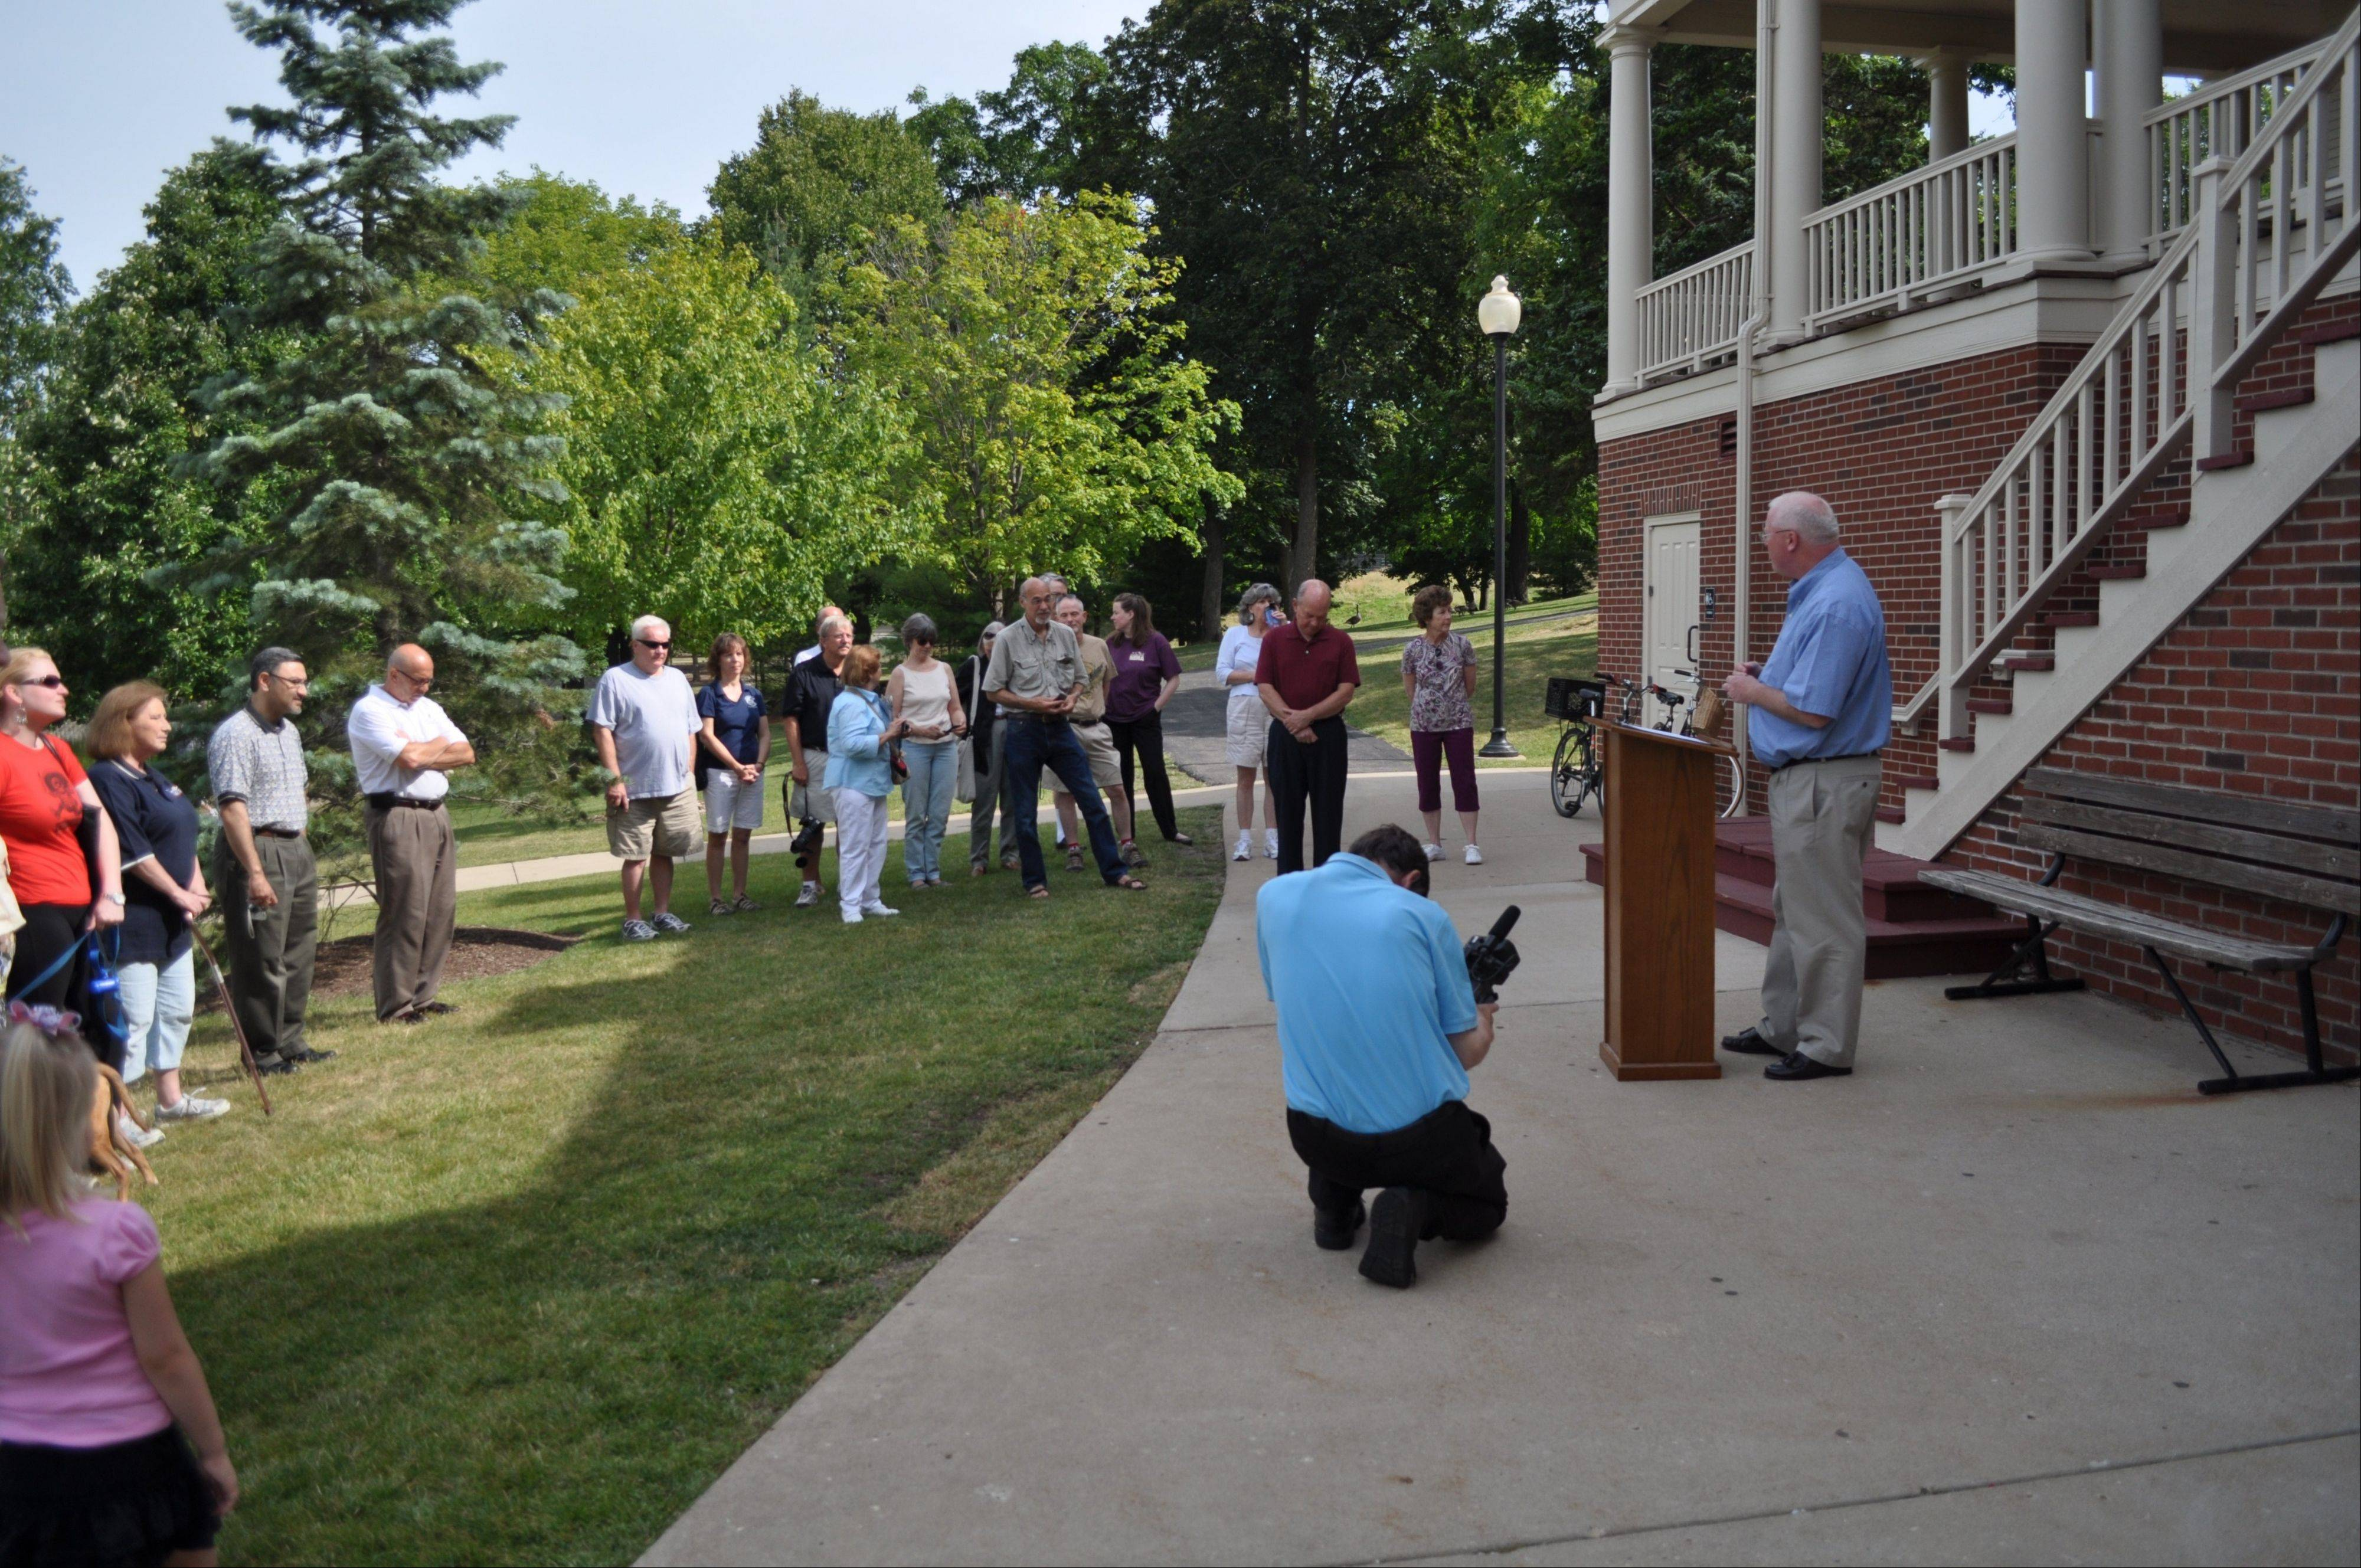 Hanover Township Supervisor Brian P. McGuire addressing the attendees at the Heritage Marker dedication ceremony at Lords Park.